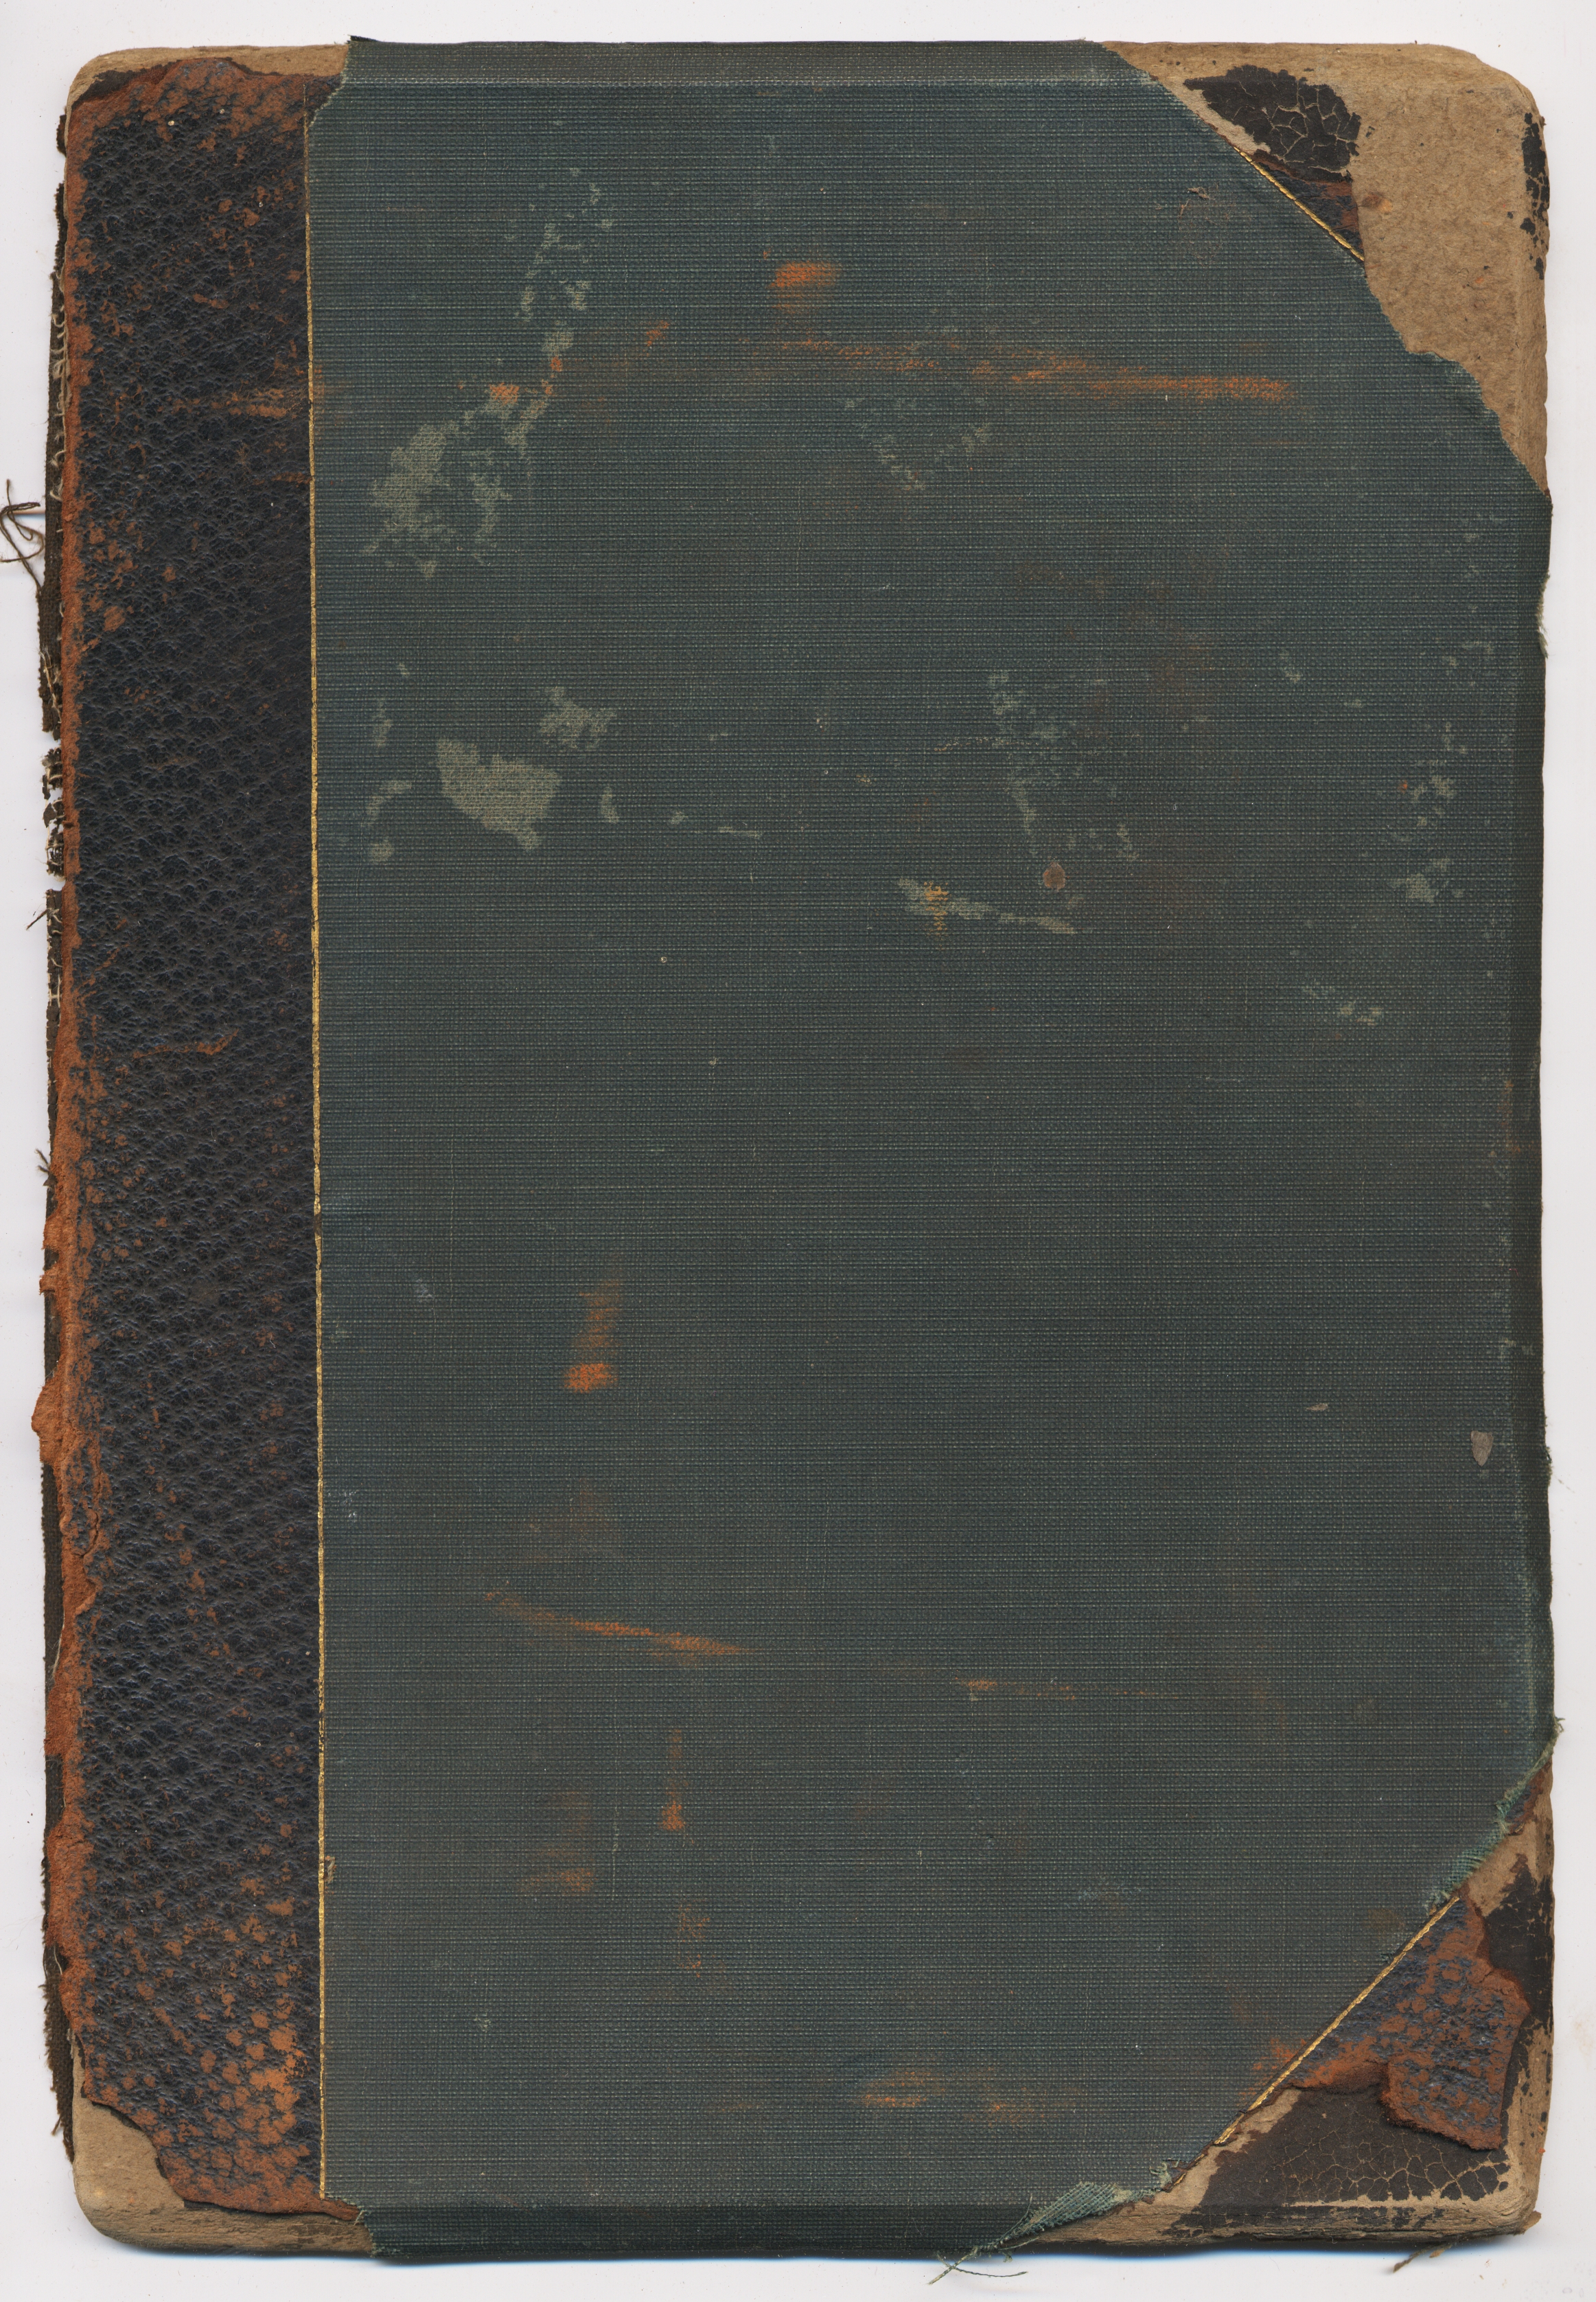 Black Book Cover Texture : Free black bumpy old book cover texture l t